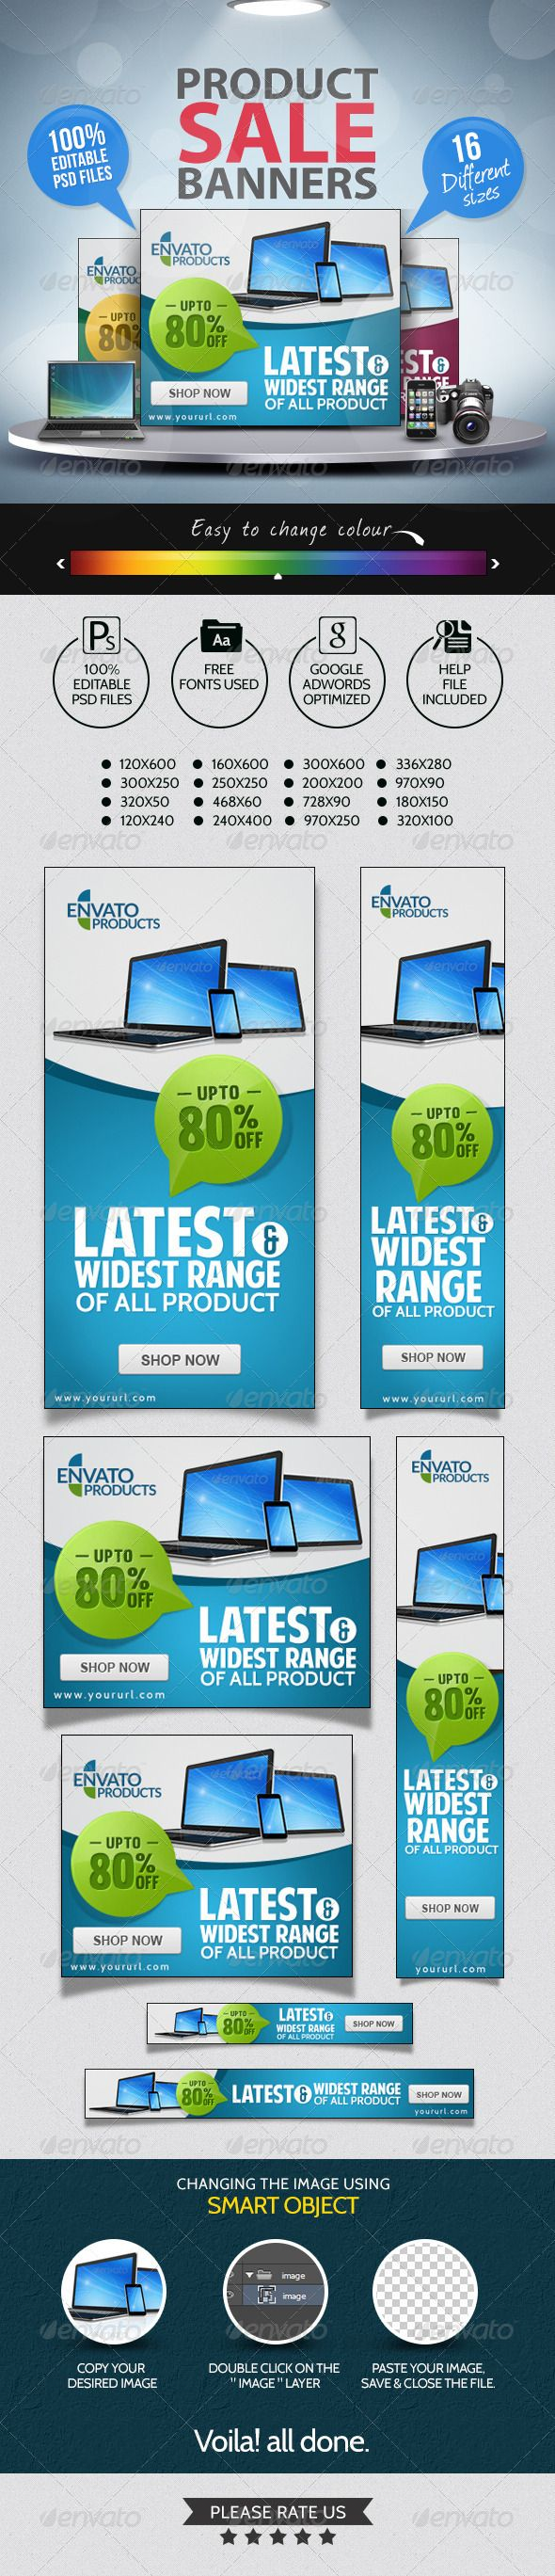 Product Sale Banners — Photoshop PSD #web banner #banner pack • Available here → https://graphicriver.net/item/product-sale-banners/7195251?ref=pxcr